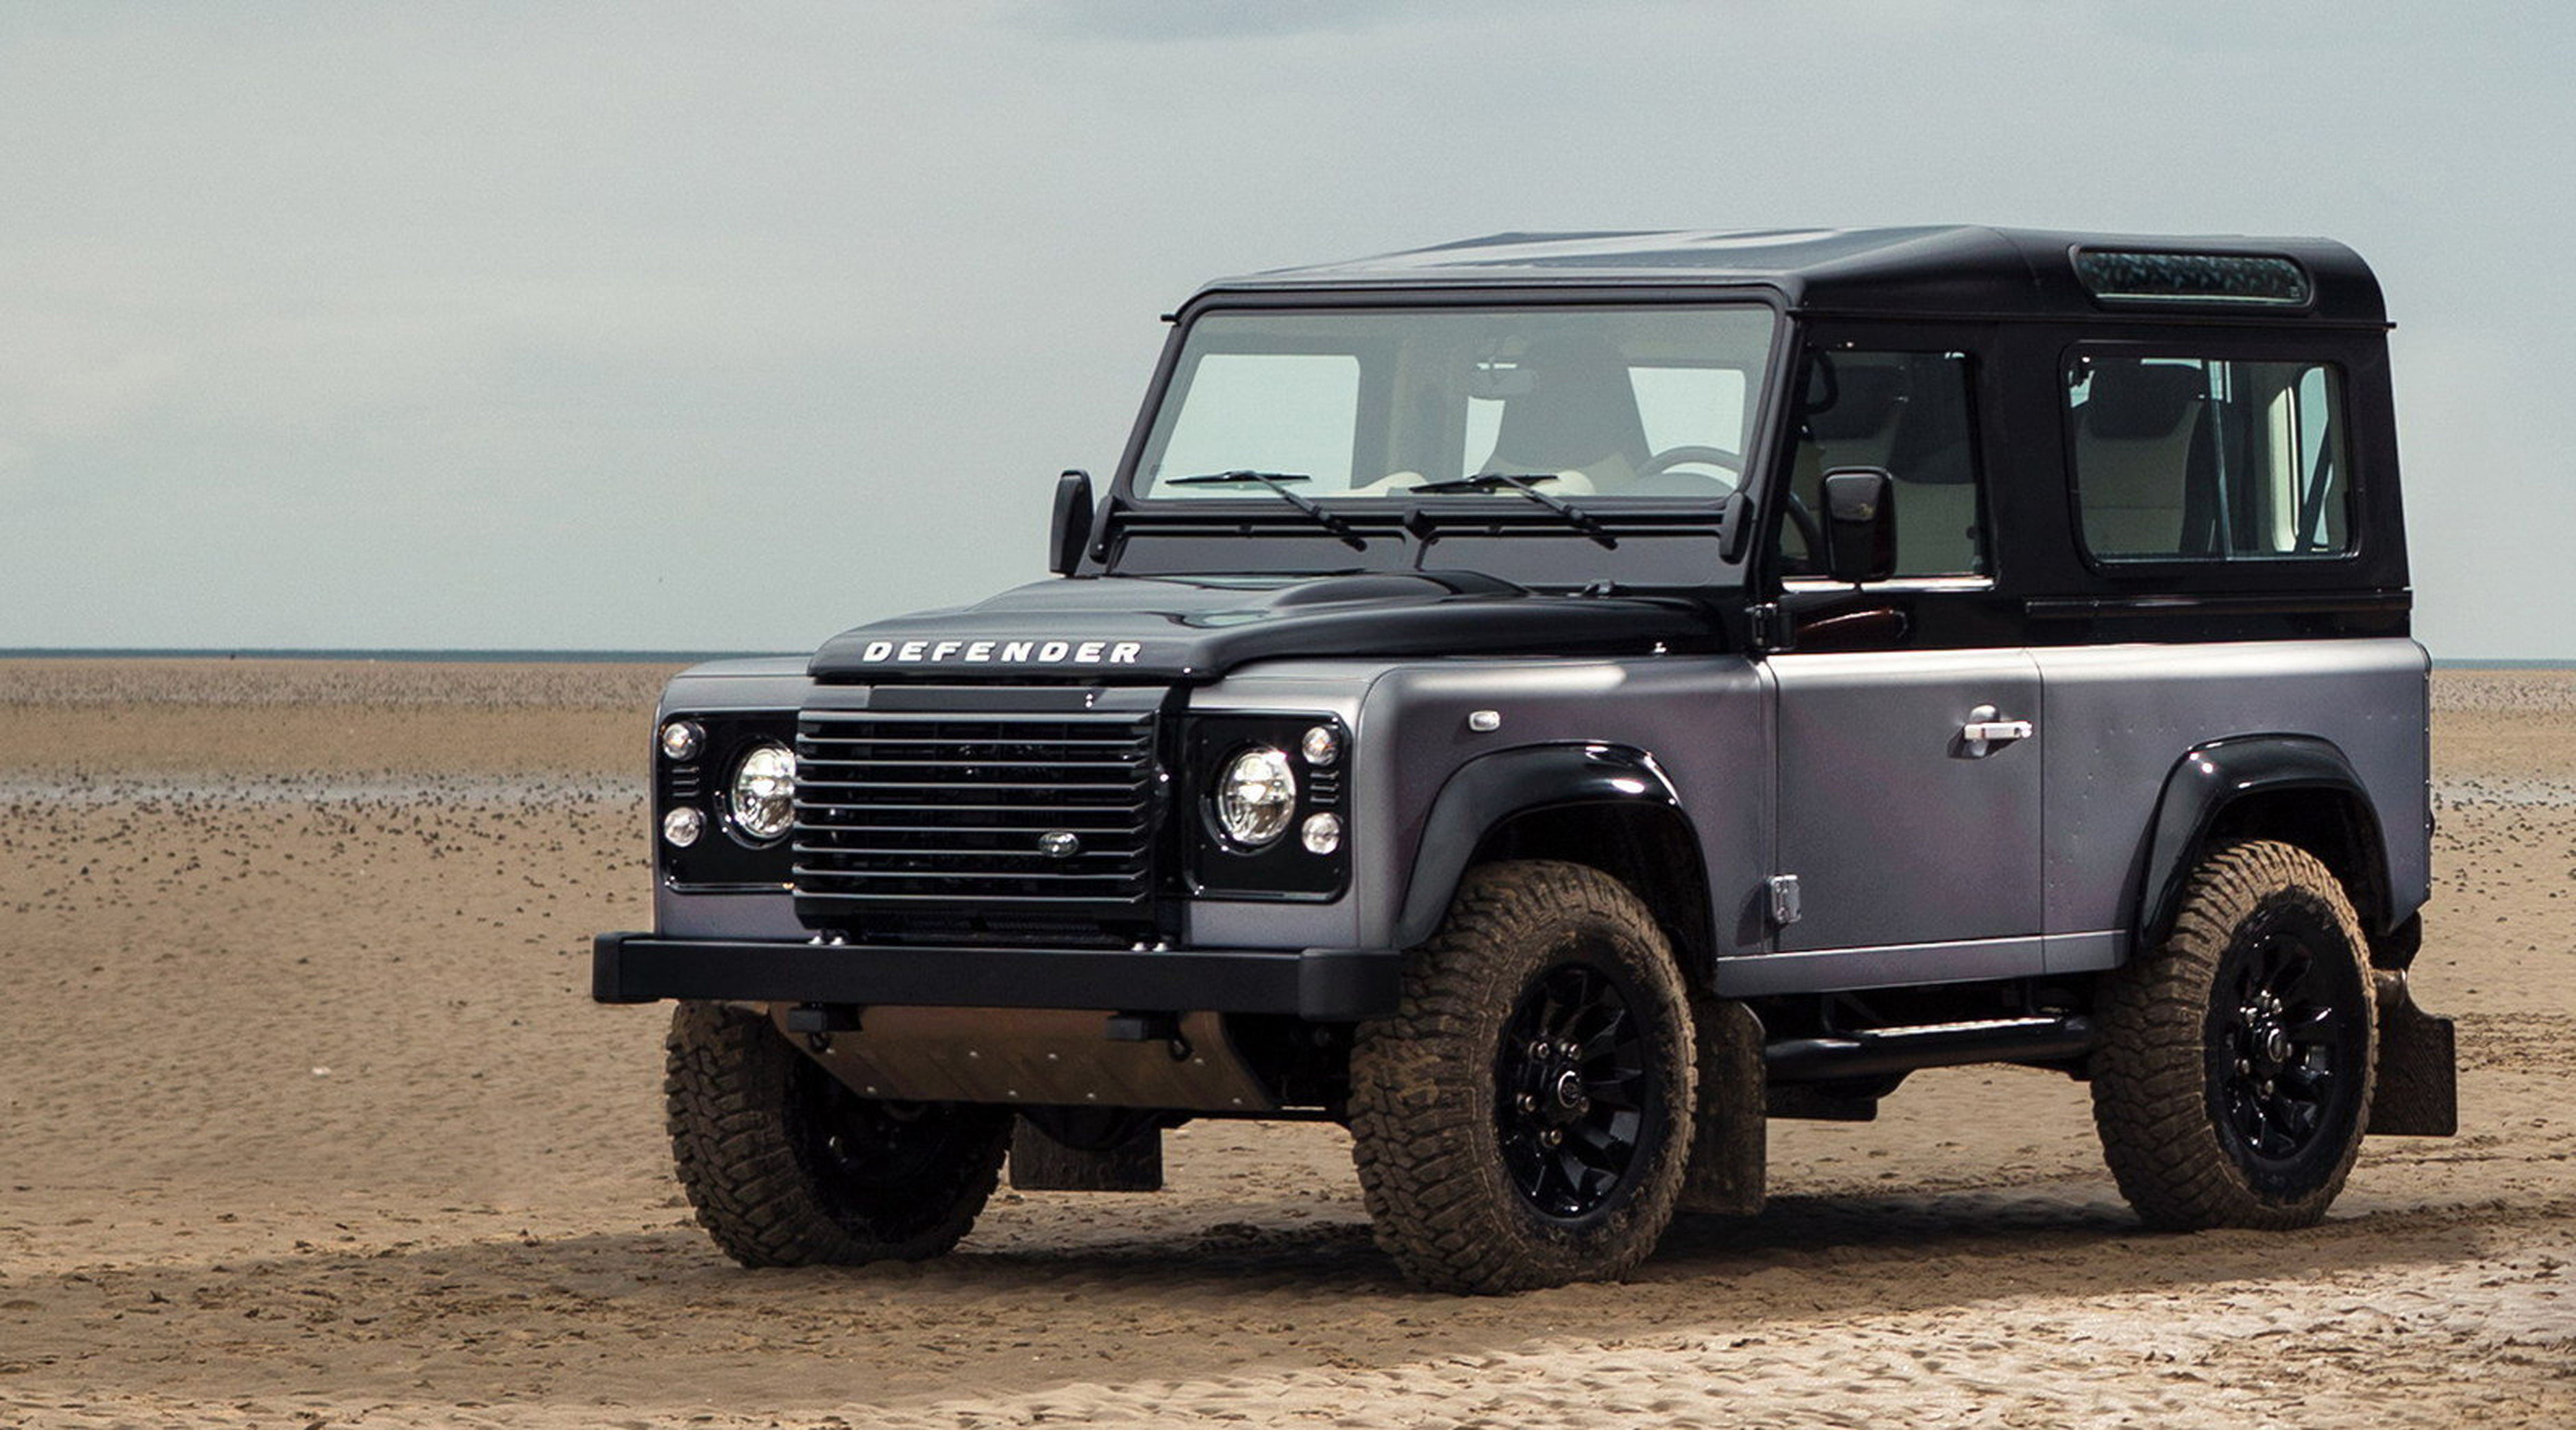 Two-millionth-Land-Rover-Defender-Sells-For-£400,000